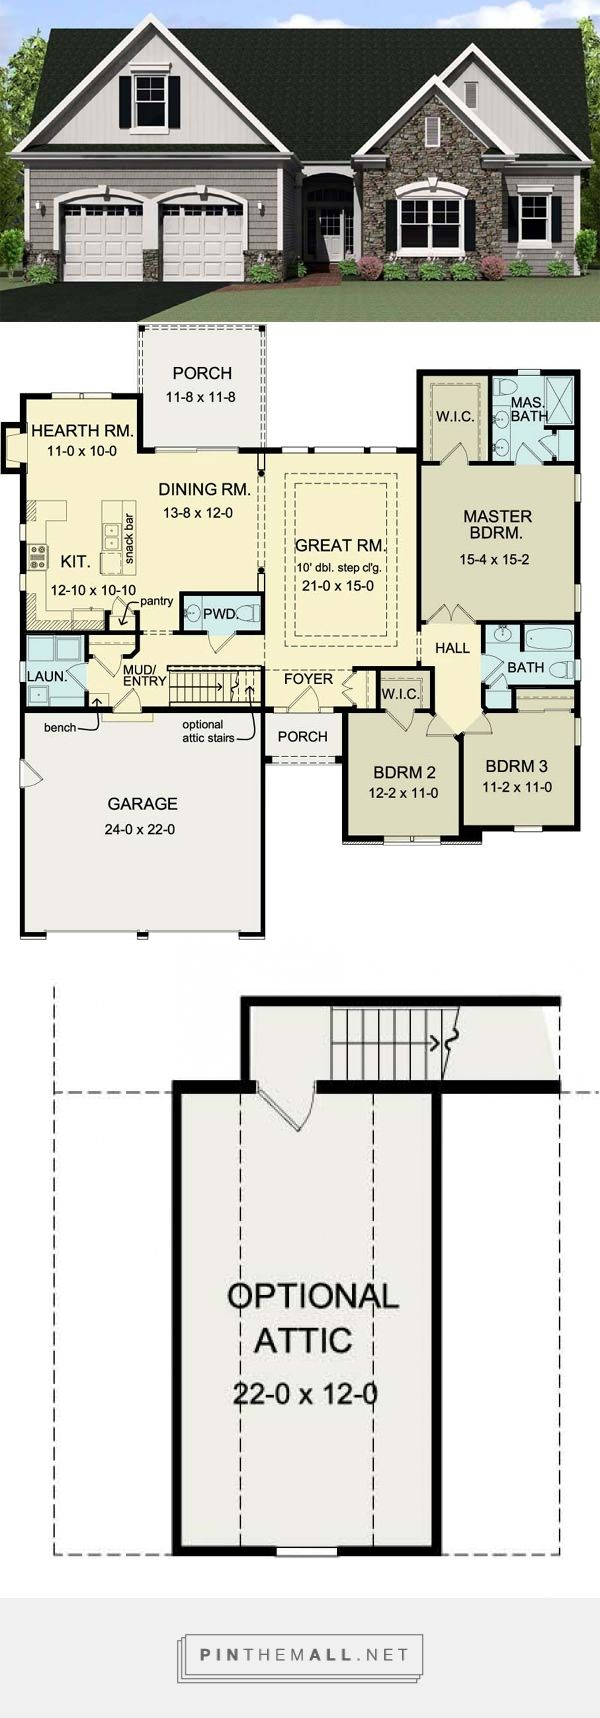 House Plan 54075 at FamilyHomePlans.com - created via https://pinthemall.net